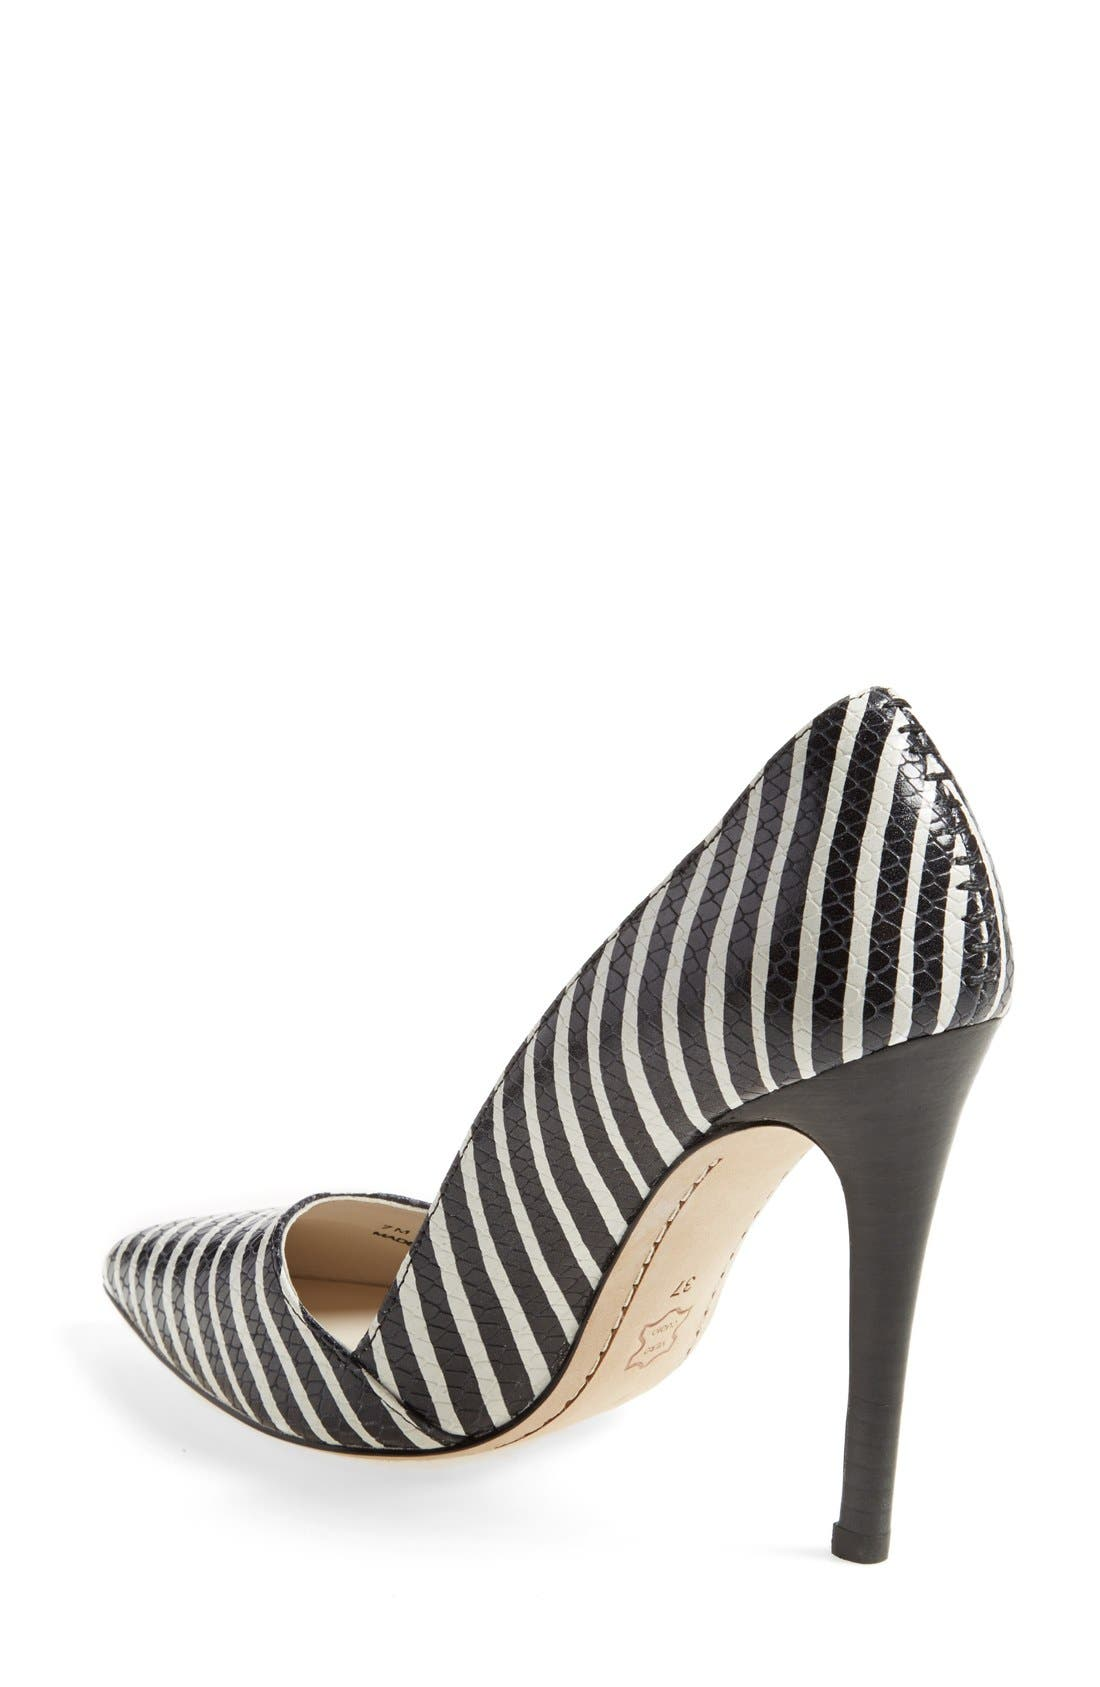 Alternate Image 2  - Alice + Olivia 'Dina' Pointy Toe Pump (Women)